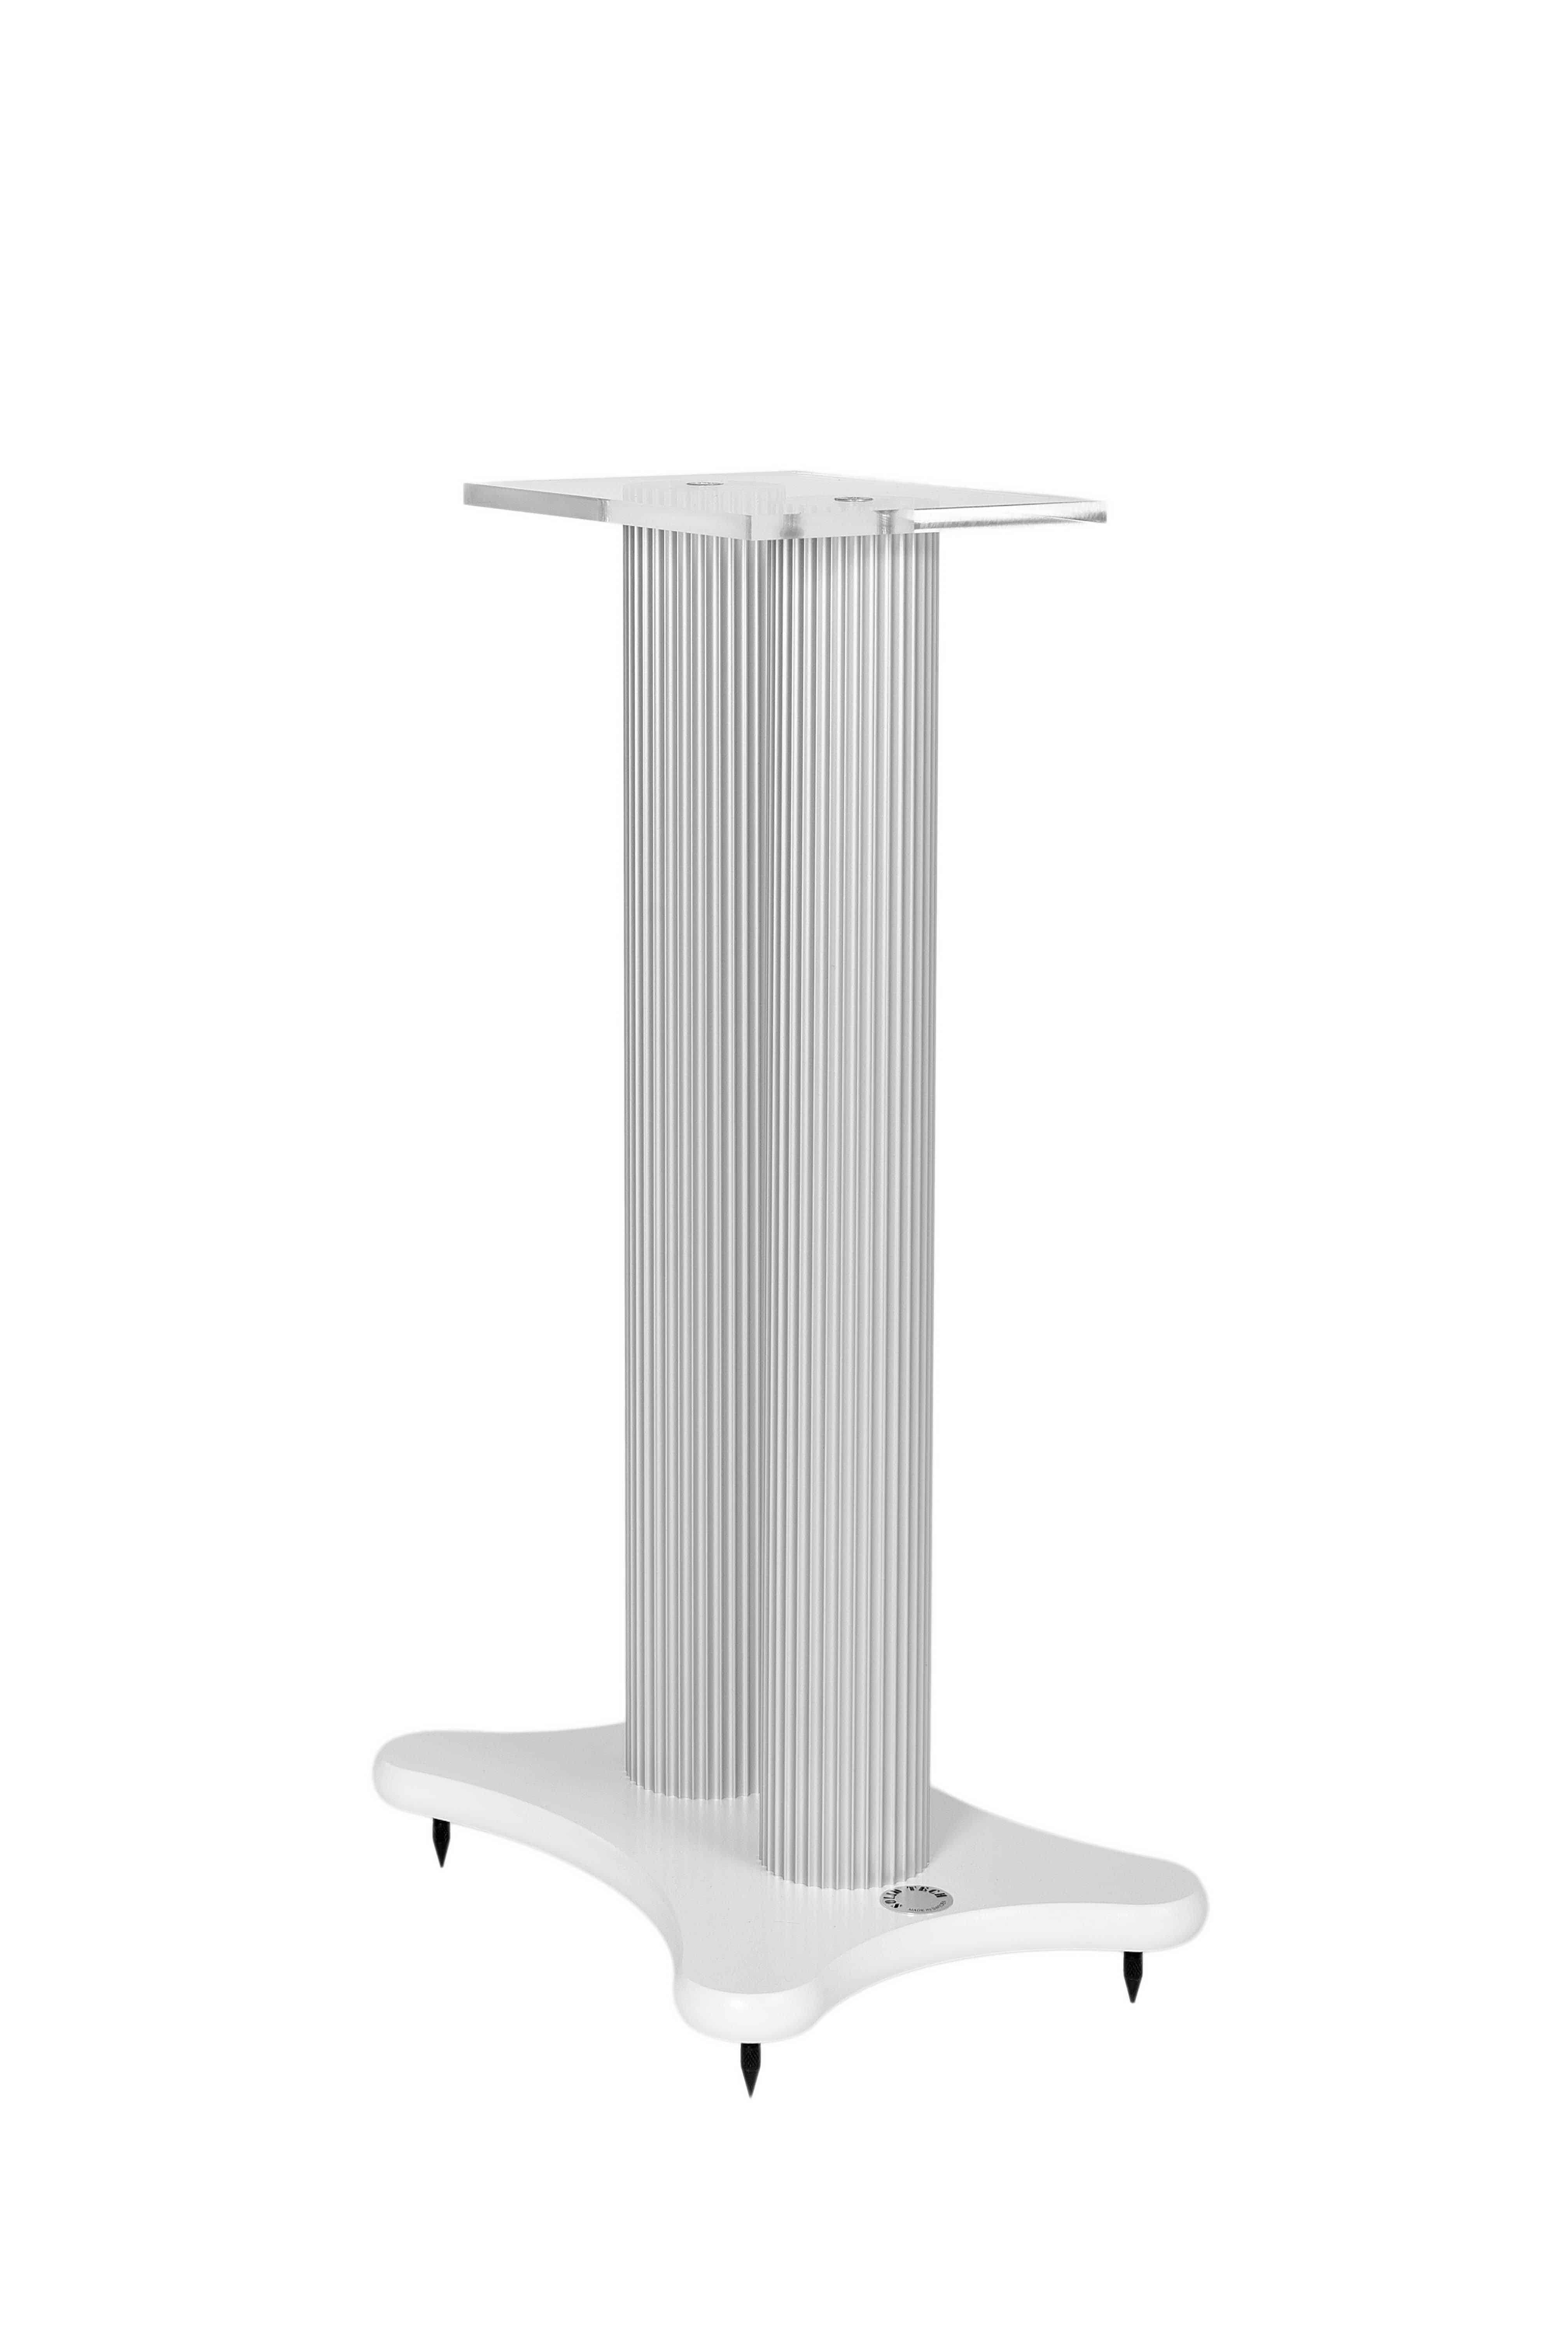 Speaker stand white foot and silver anodized pillars Image